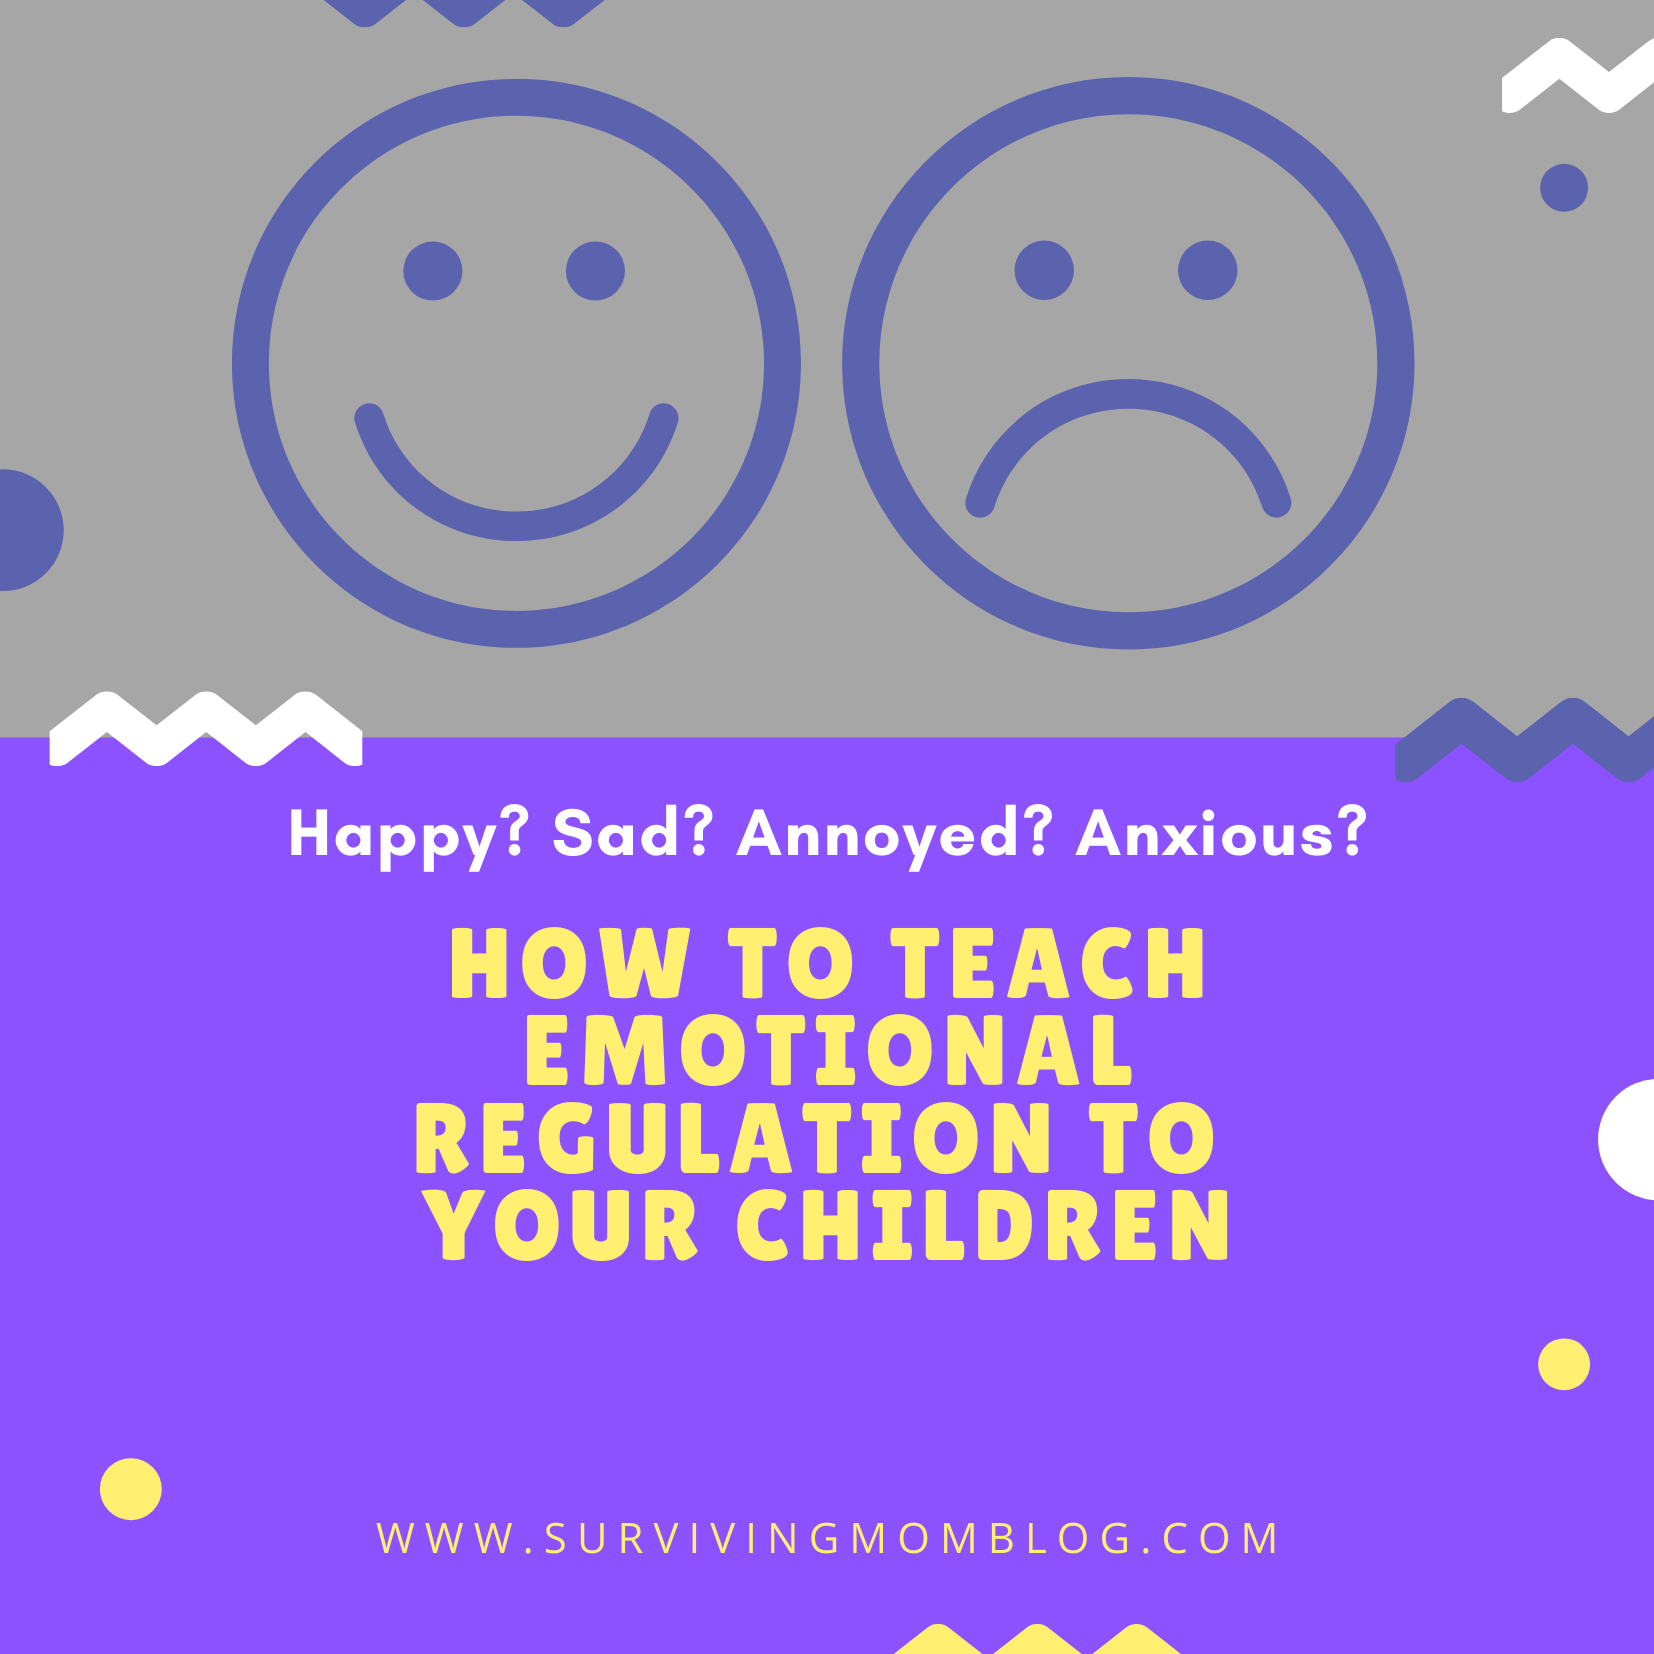 How to Teach Emotional Regulation to Your Children